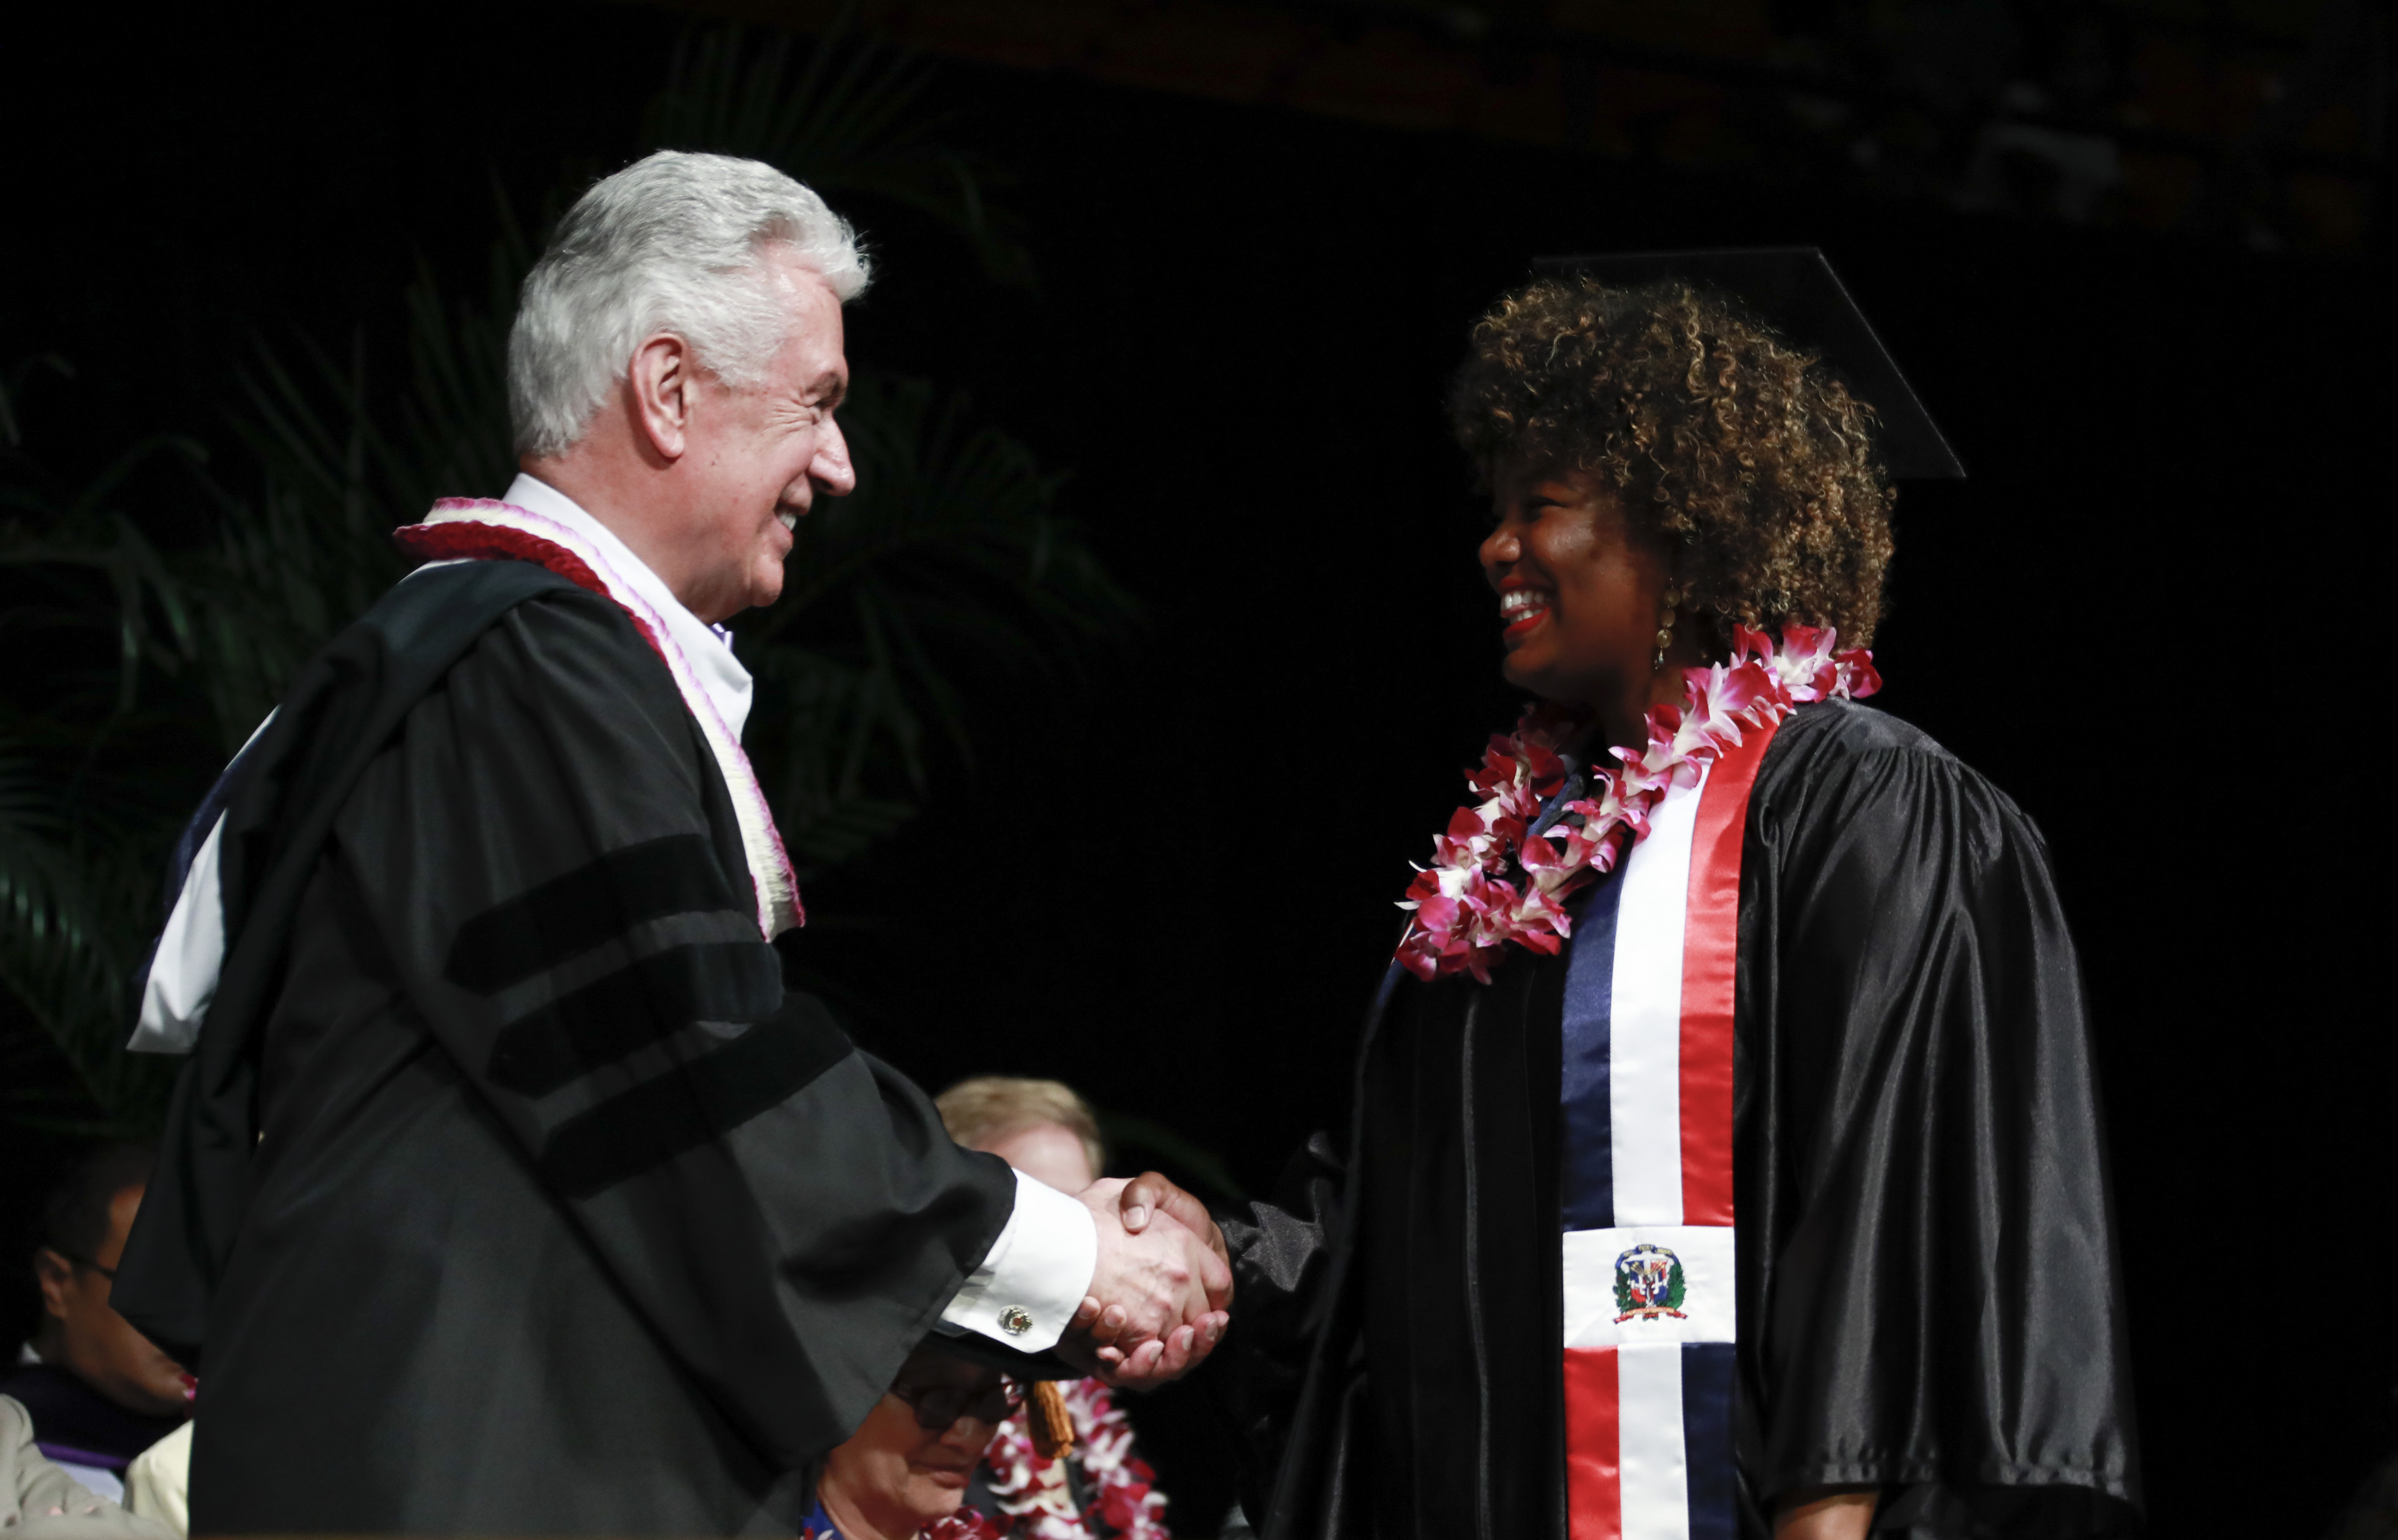 Elder Dieter F. Uchtdorf of the Quorum of the Twelve Apostles greets a BYU-Hawaii graduate during commencement on Dec. 14.